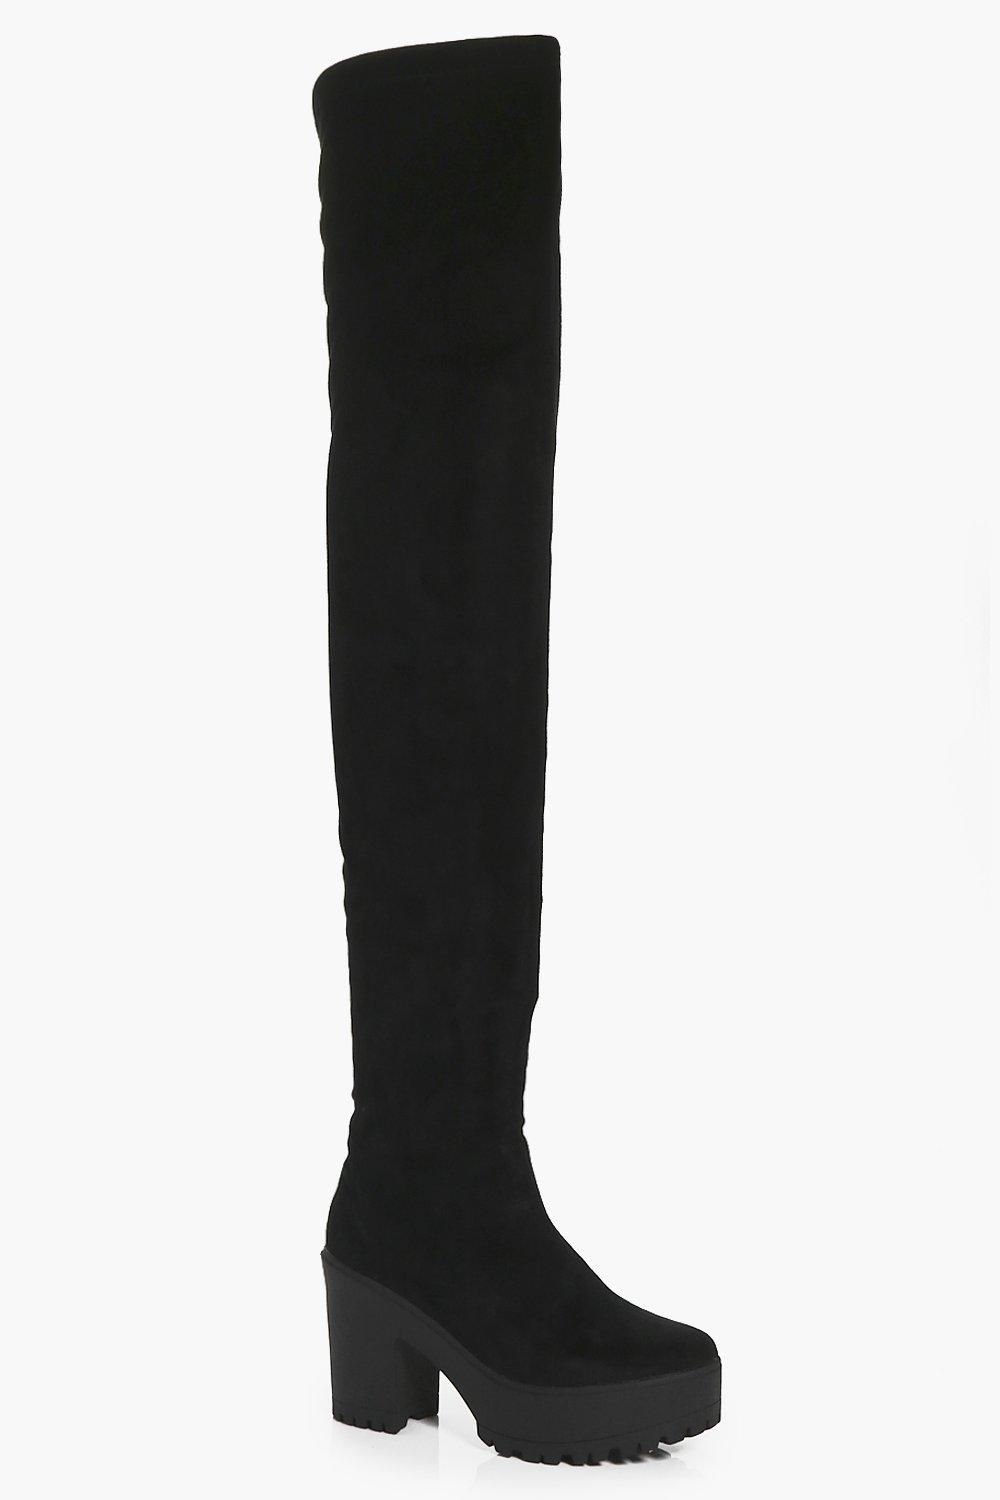 Amber Cleated Thigh High Boot